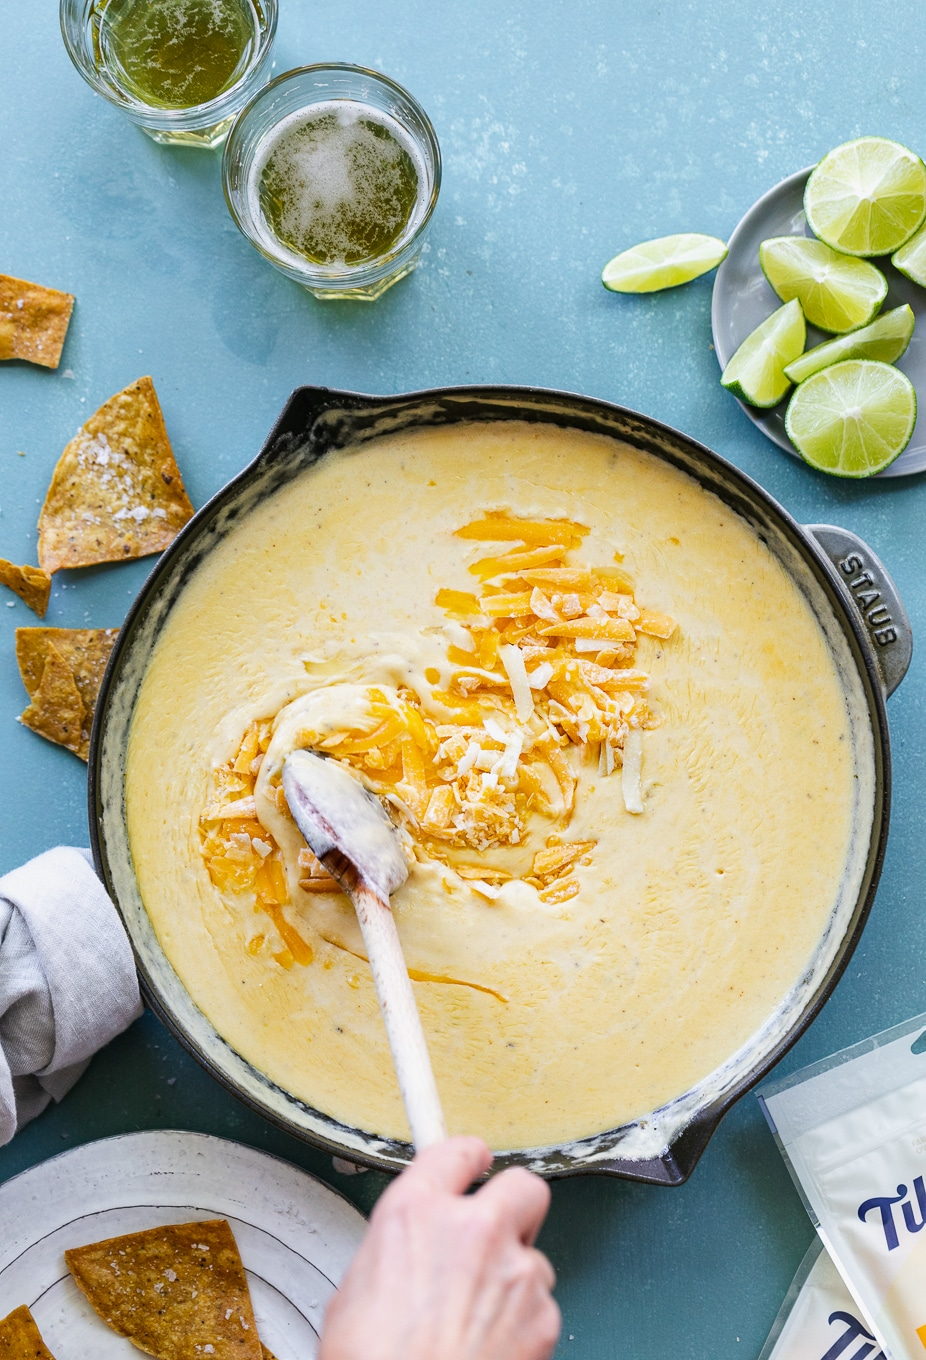 Overhead shot of a skillet of beer cheese dip with cheese being stirred into it